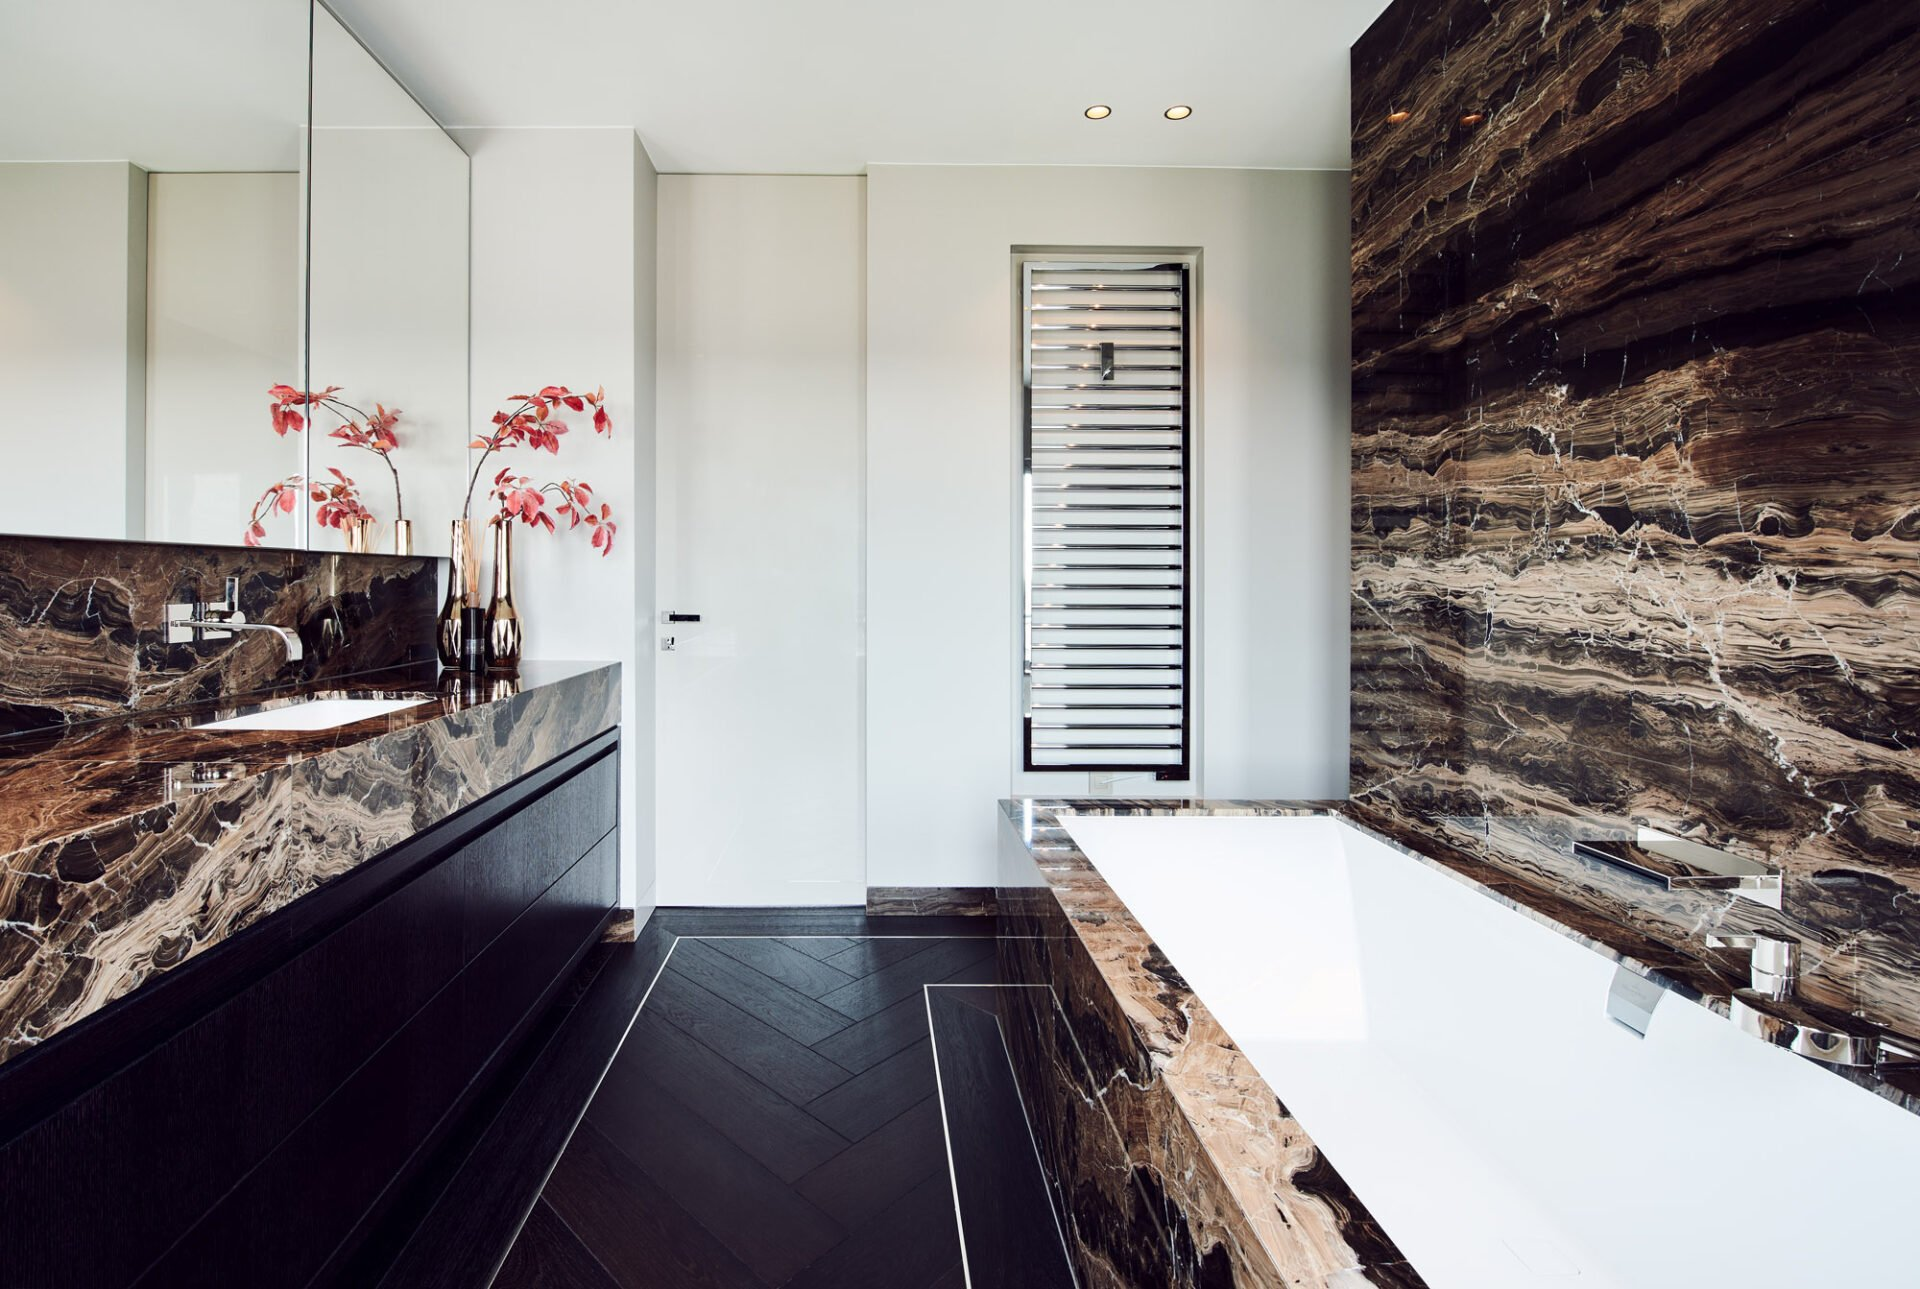 interior design marble sink and bath brown with red flowers